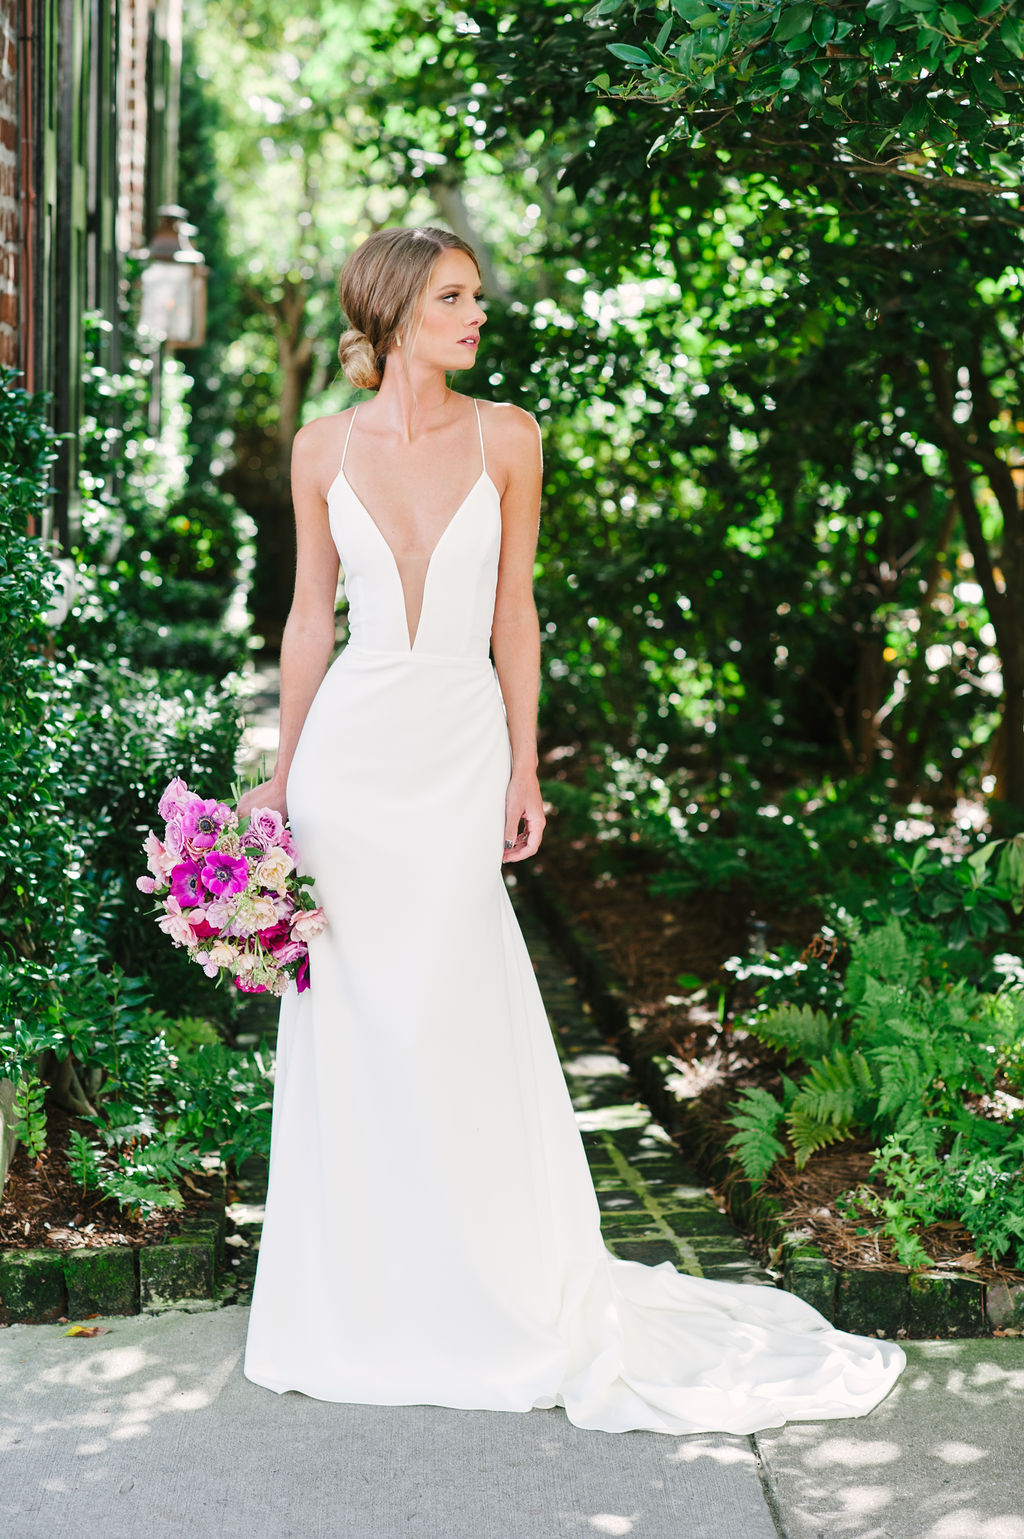 charleston-styled-elopement-17.jpg